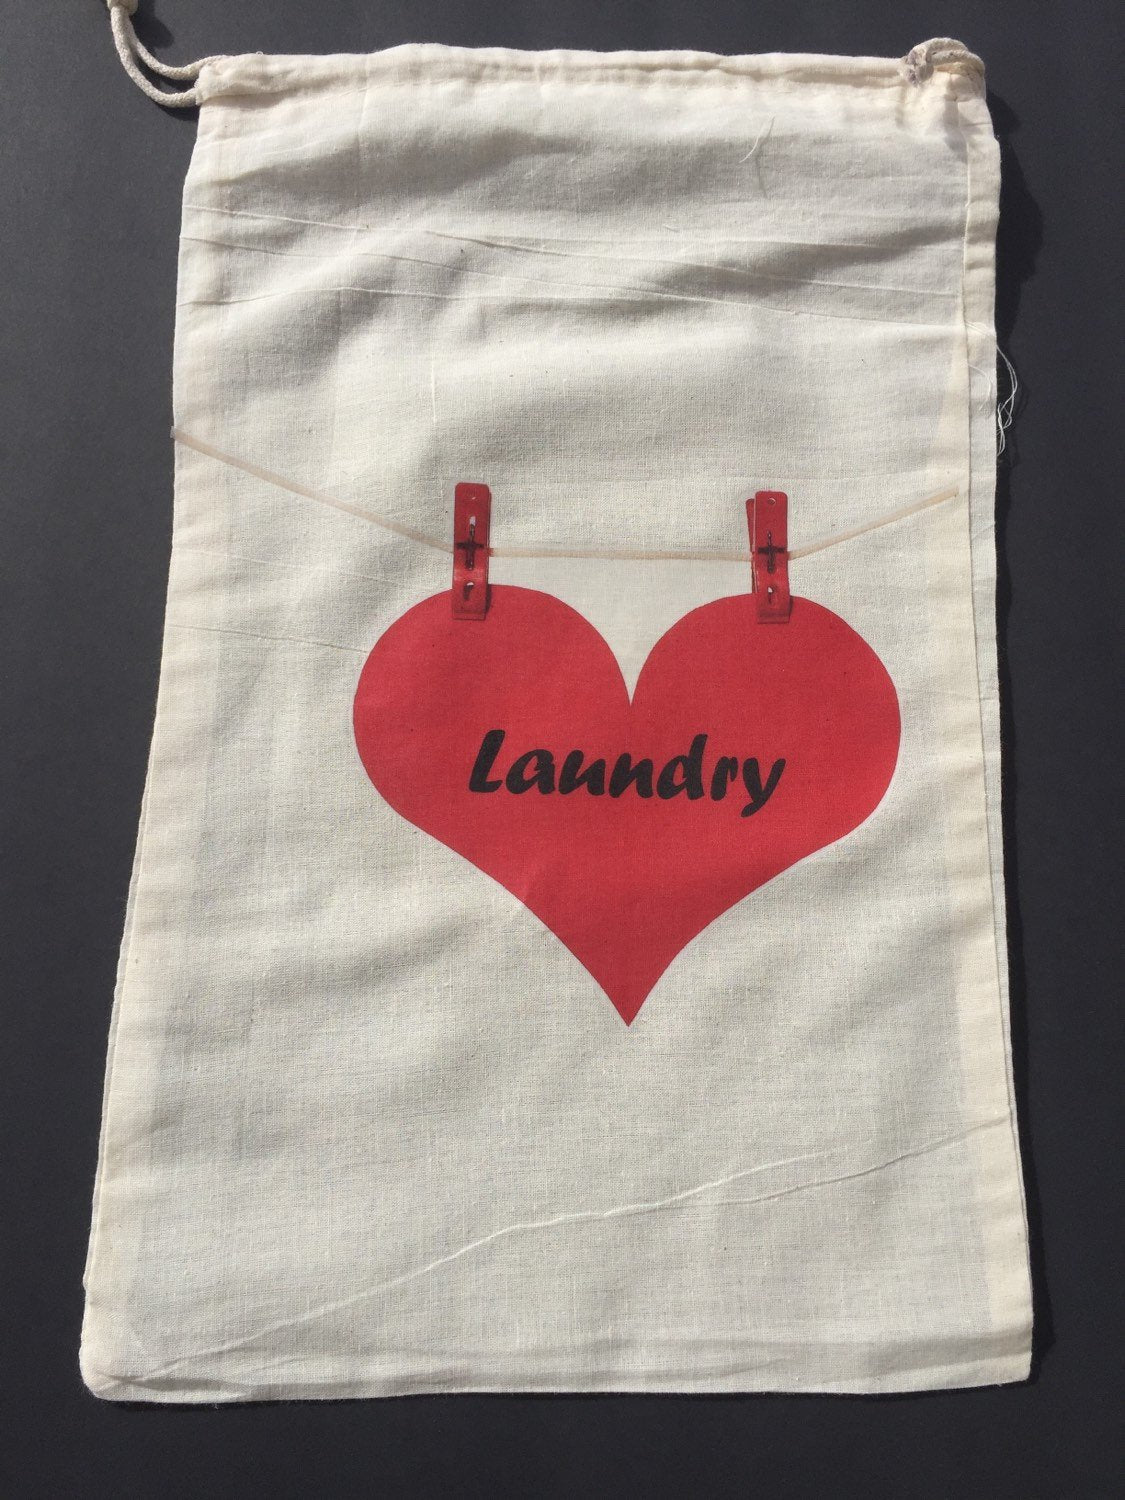 Travel Laundry bag, lingerie bag, travel accessories, travel gift, travel organizer